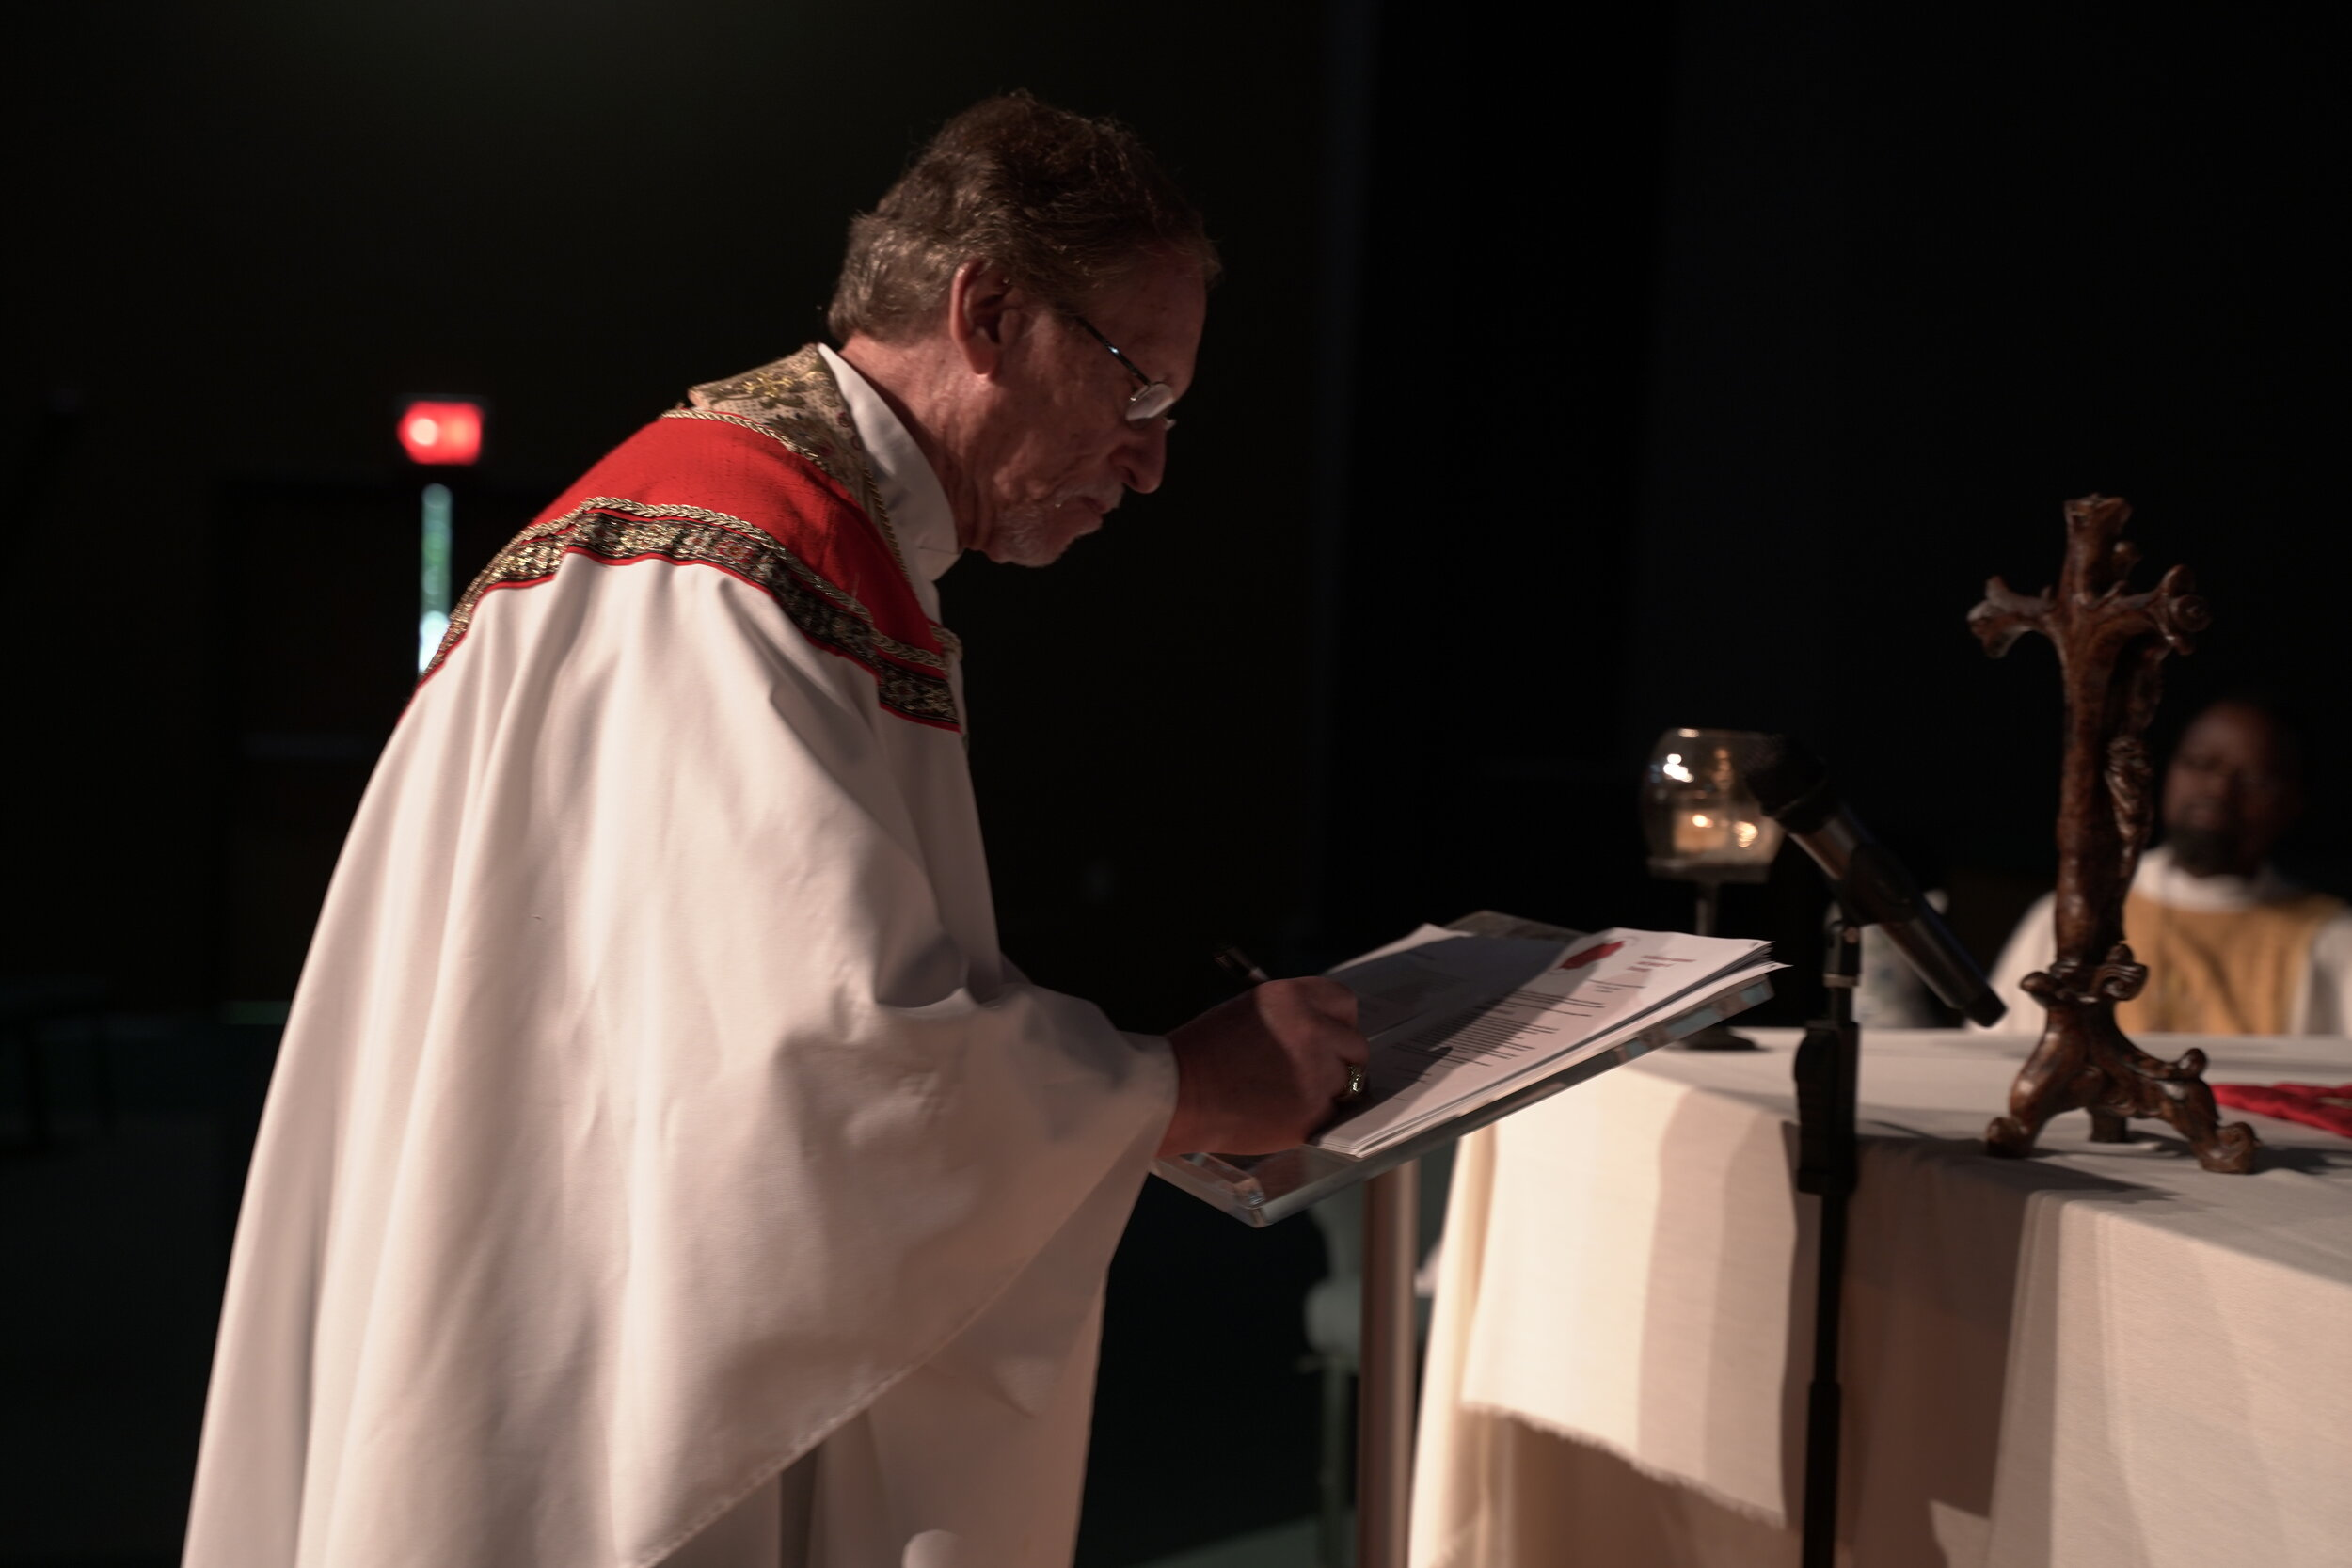 Archbishop Russ McClanahan signs the Instruments of Unity of the CEEC at the October 2019 Synod